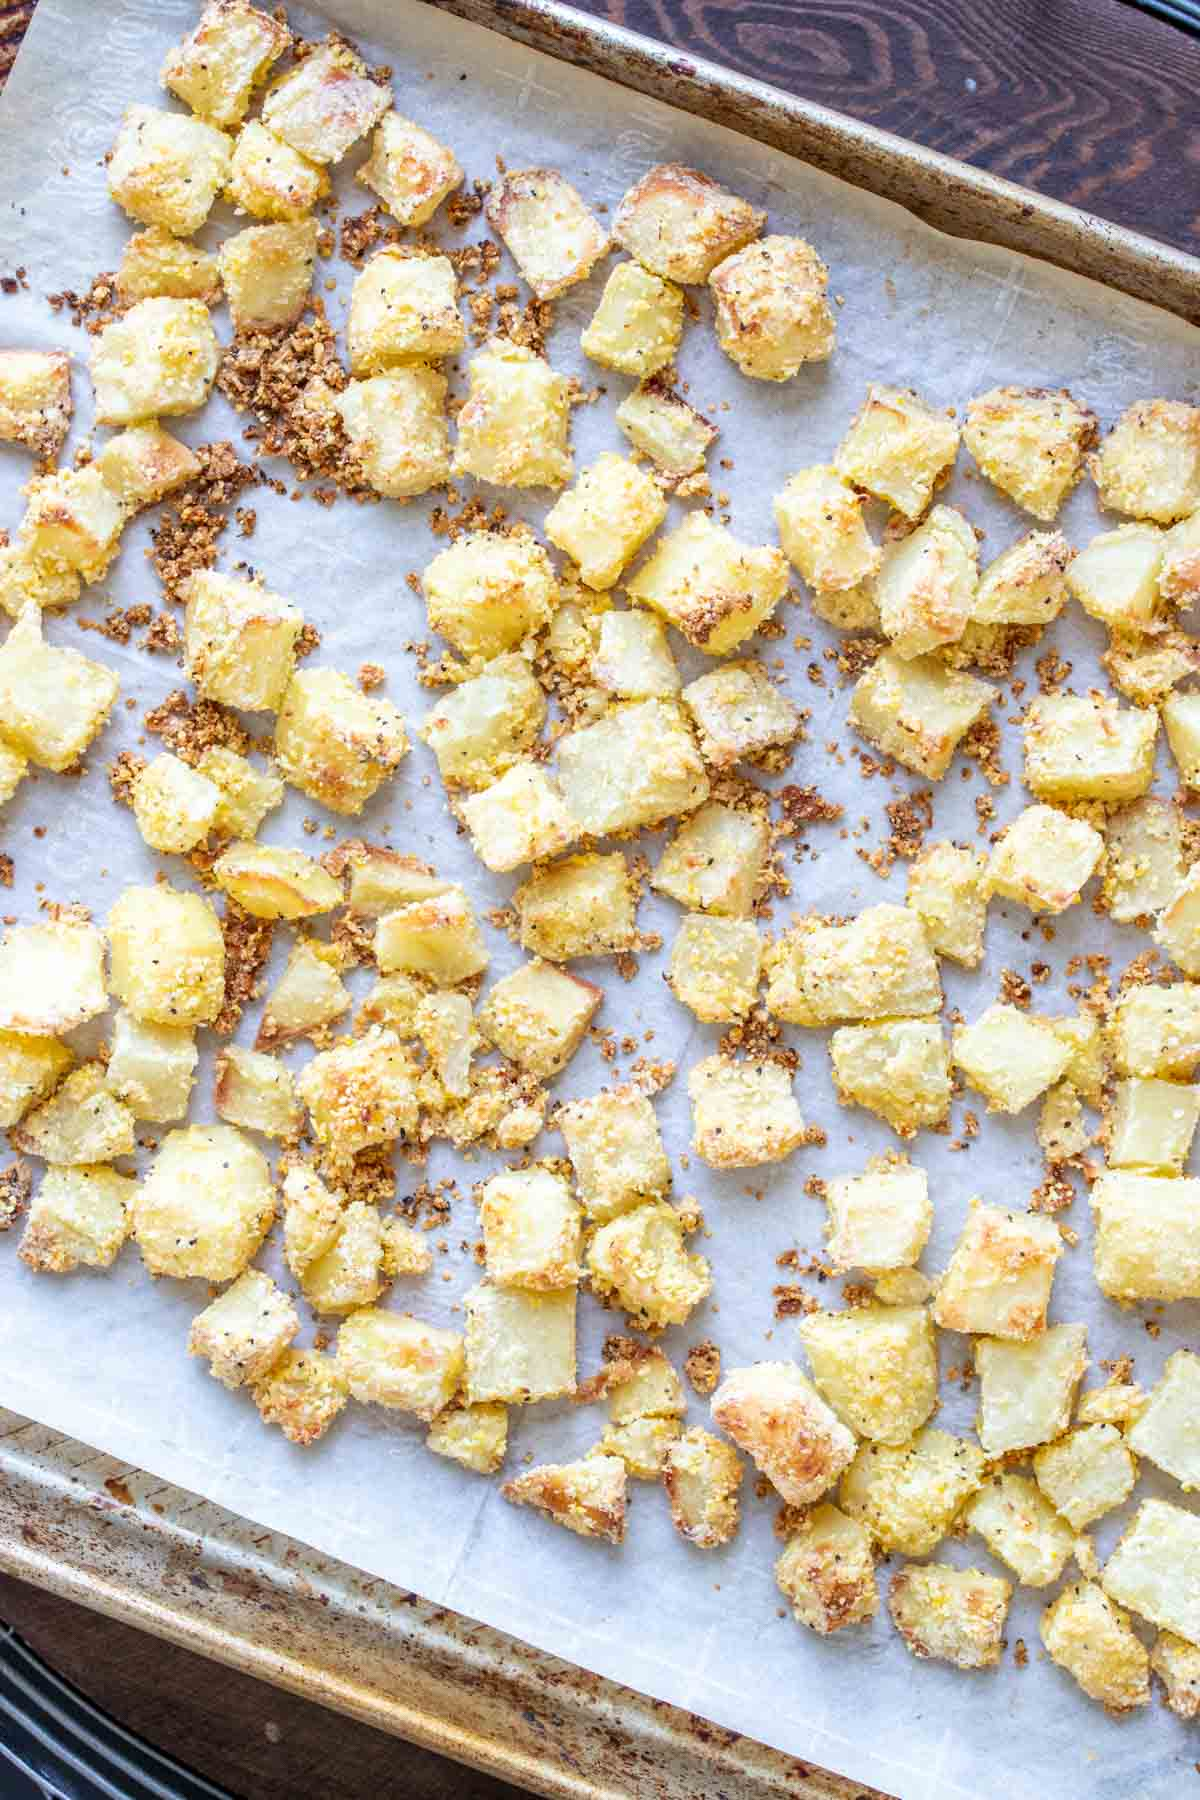 Baking sheet with parchment paper and baked crispy potato pieces